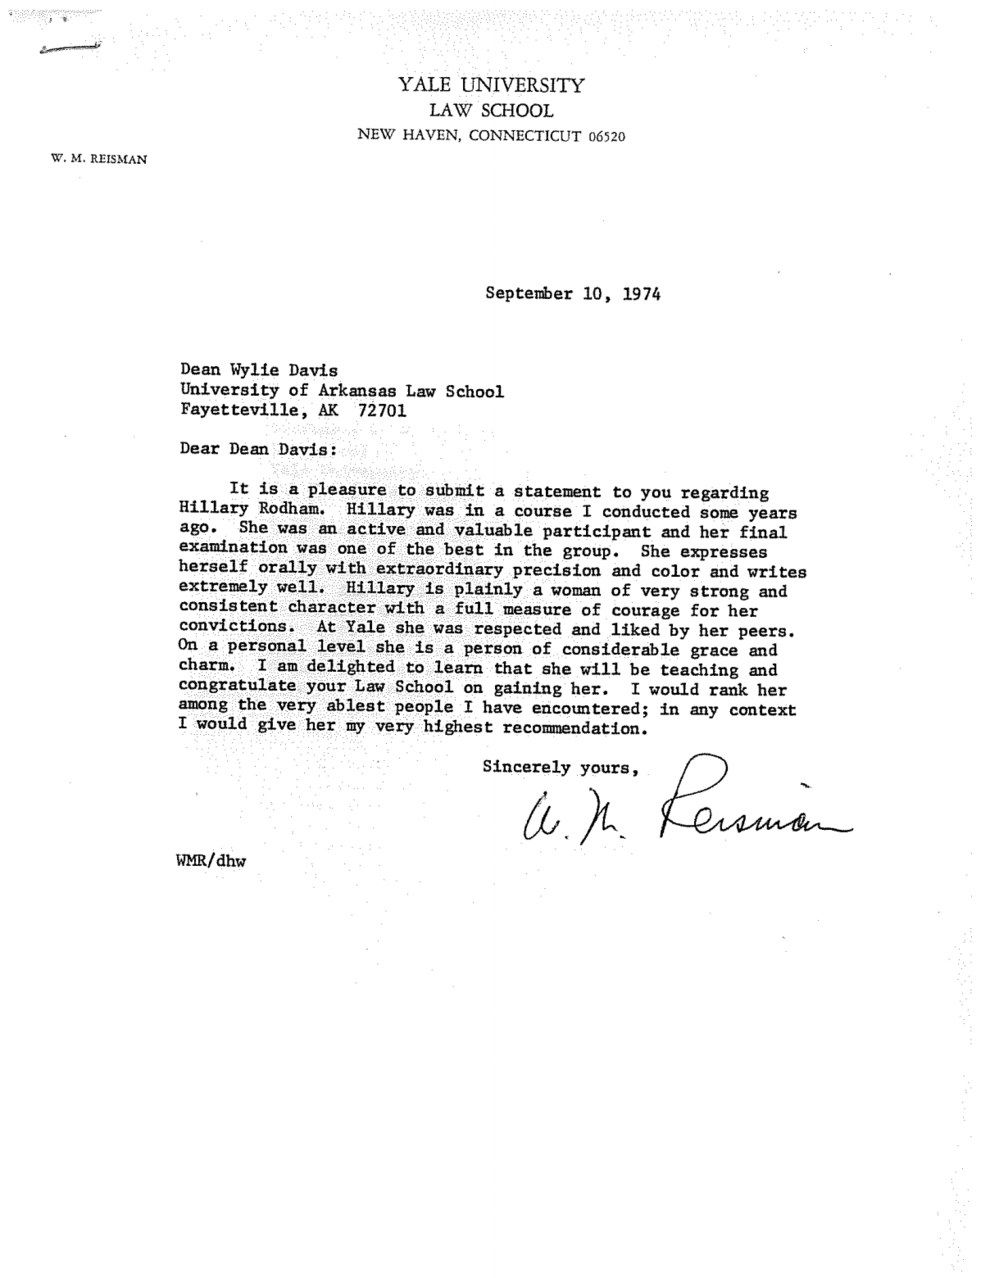 A Letter Of Recommendation From Yale Law Professor WM Reisman